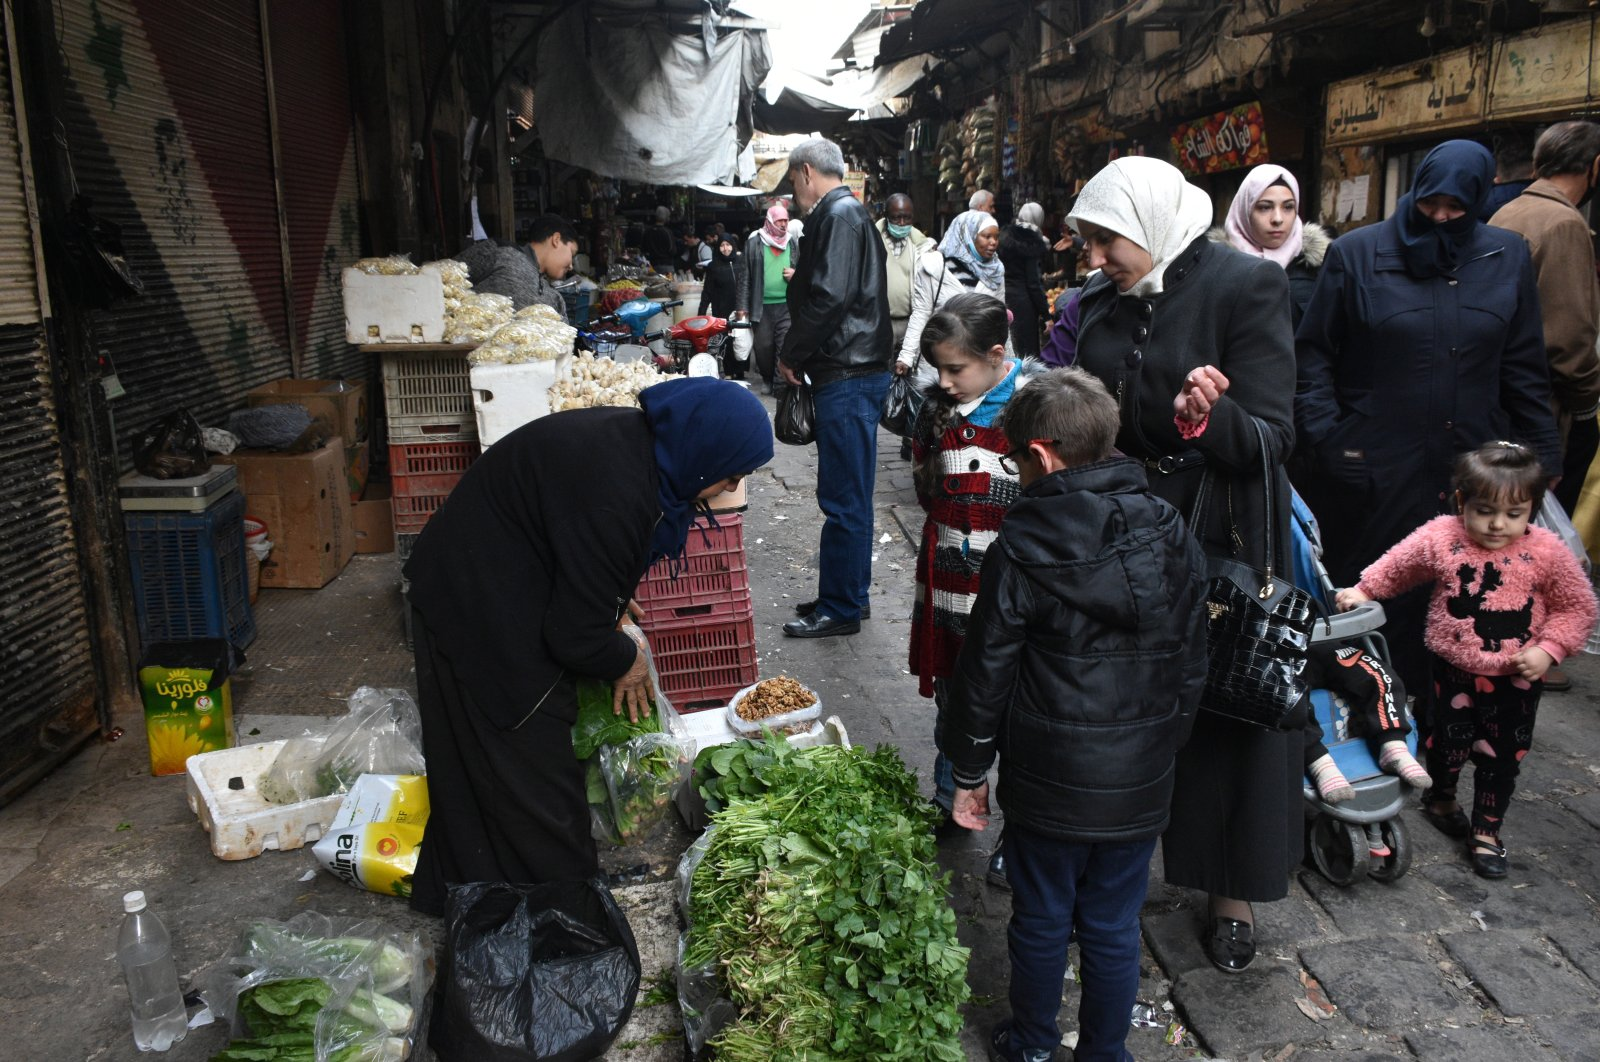 Syrians buy basic food items and other necessities on a street in Damascus, Syria, Jan. 5, 2021.  (EPA Photo)